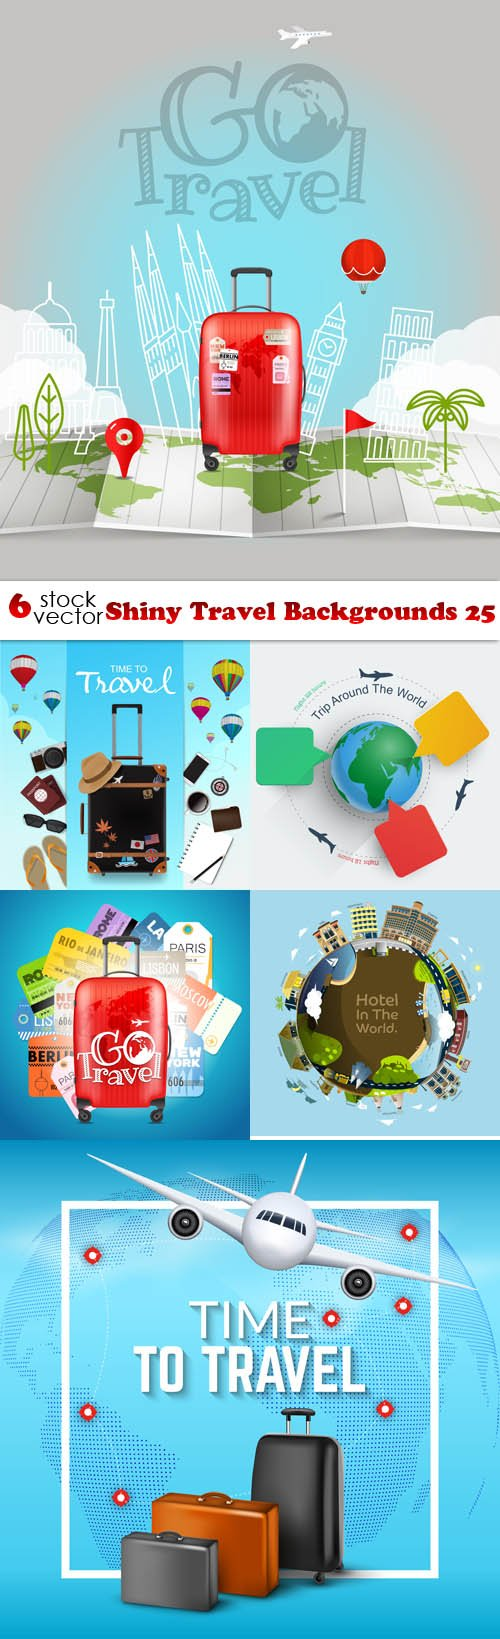 Vectors - Shiny Travel Backgrounds 25